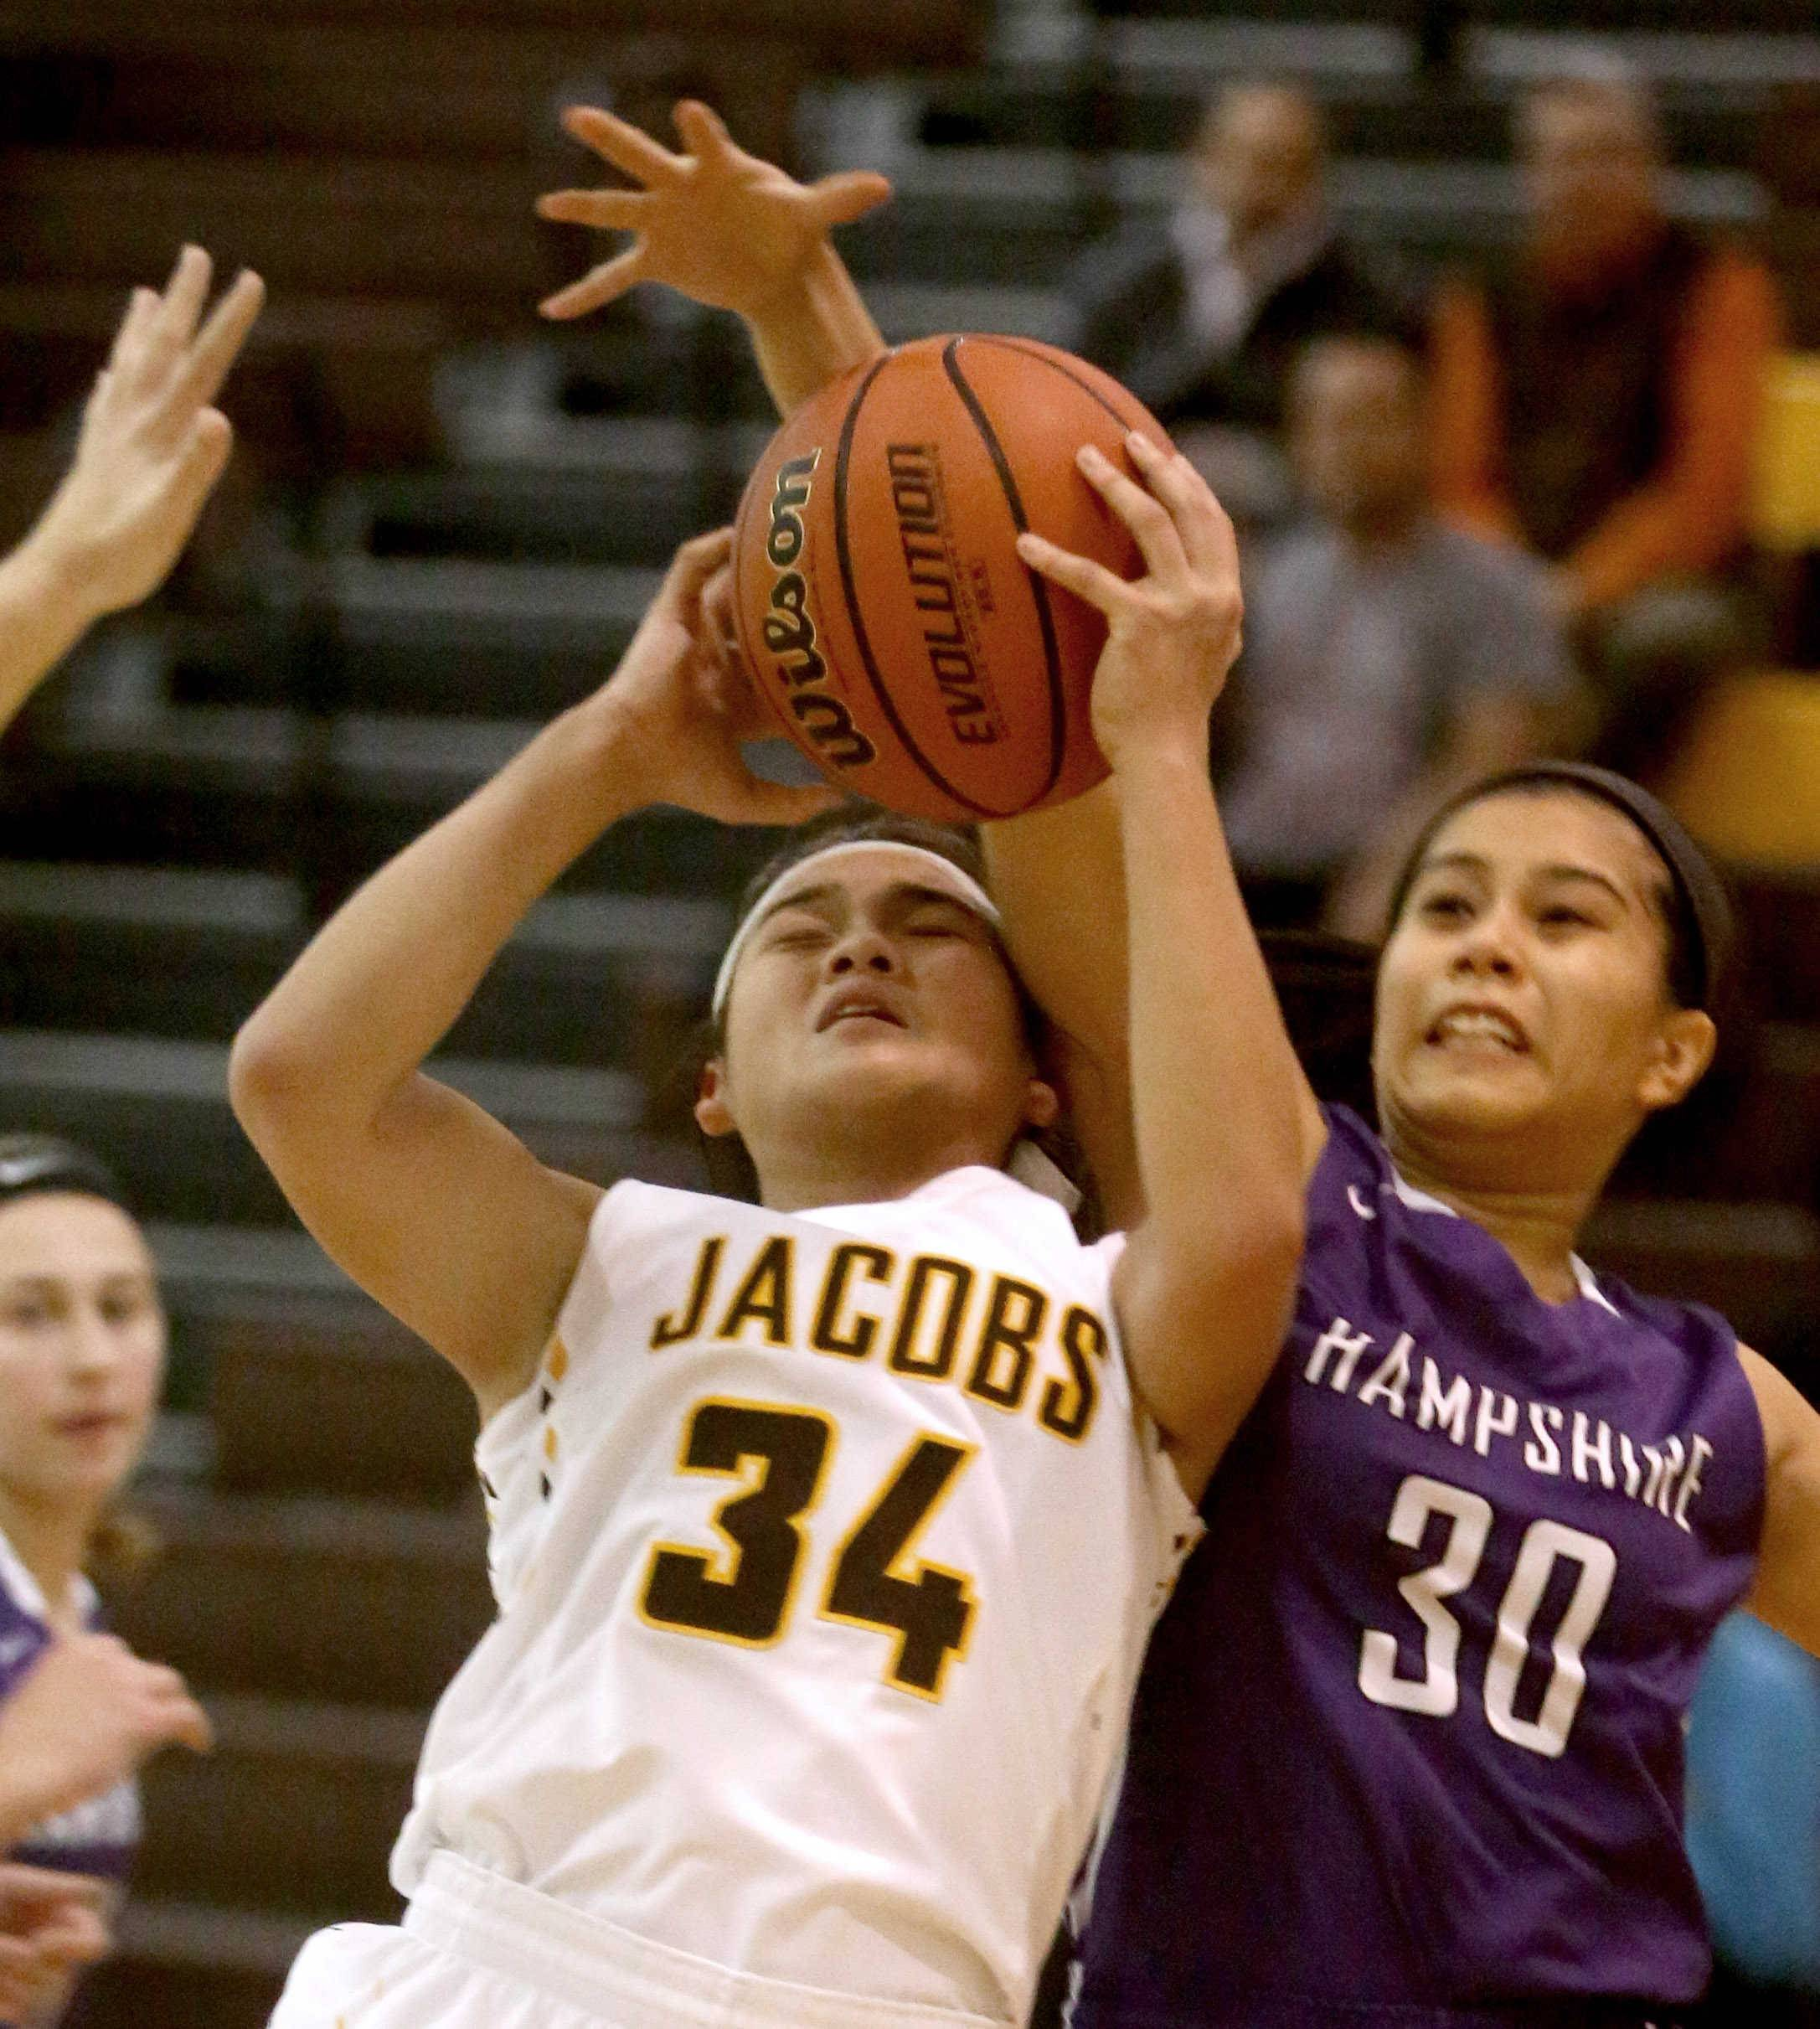 Hampshire's Kiera Guerrero-Gay, right, battles Jacobs' Kyra Cabusao, left, during varsity girls basketball action in Algonquin Tuesday night.